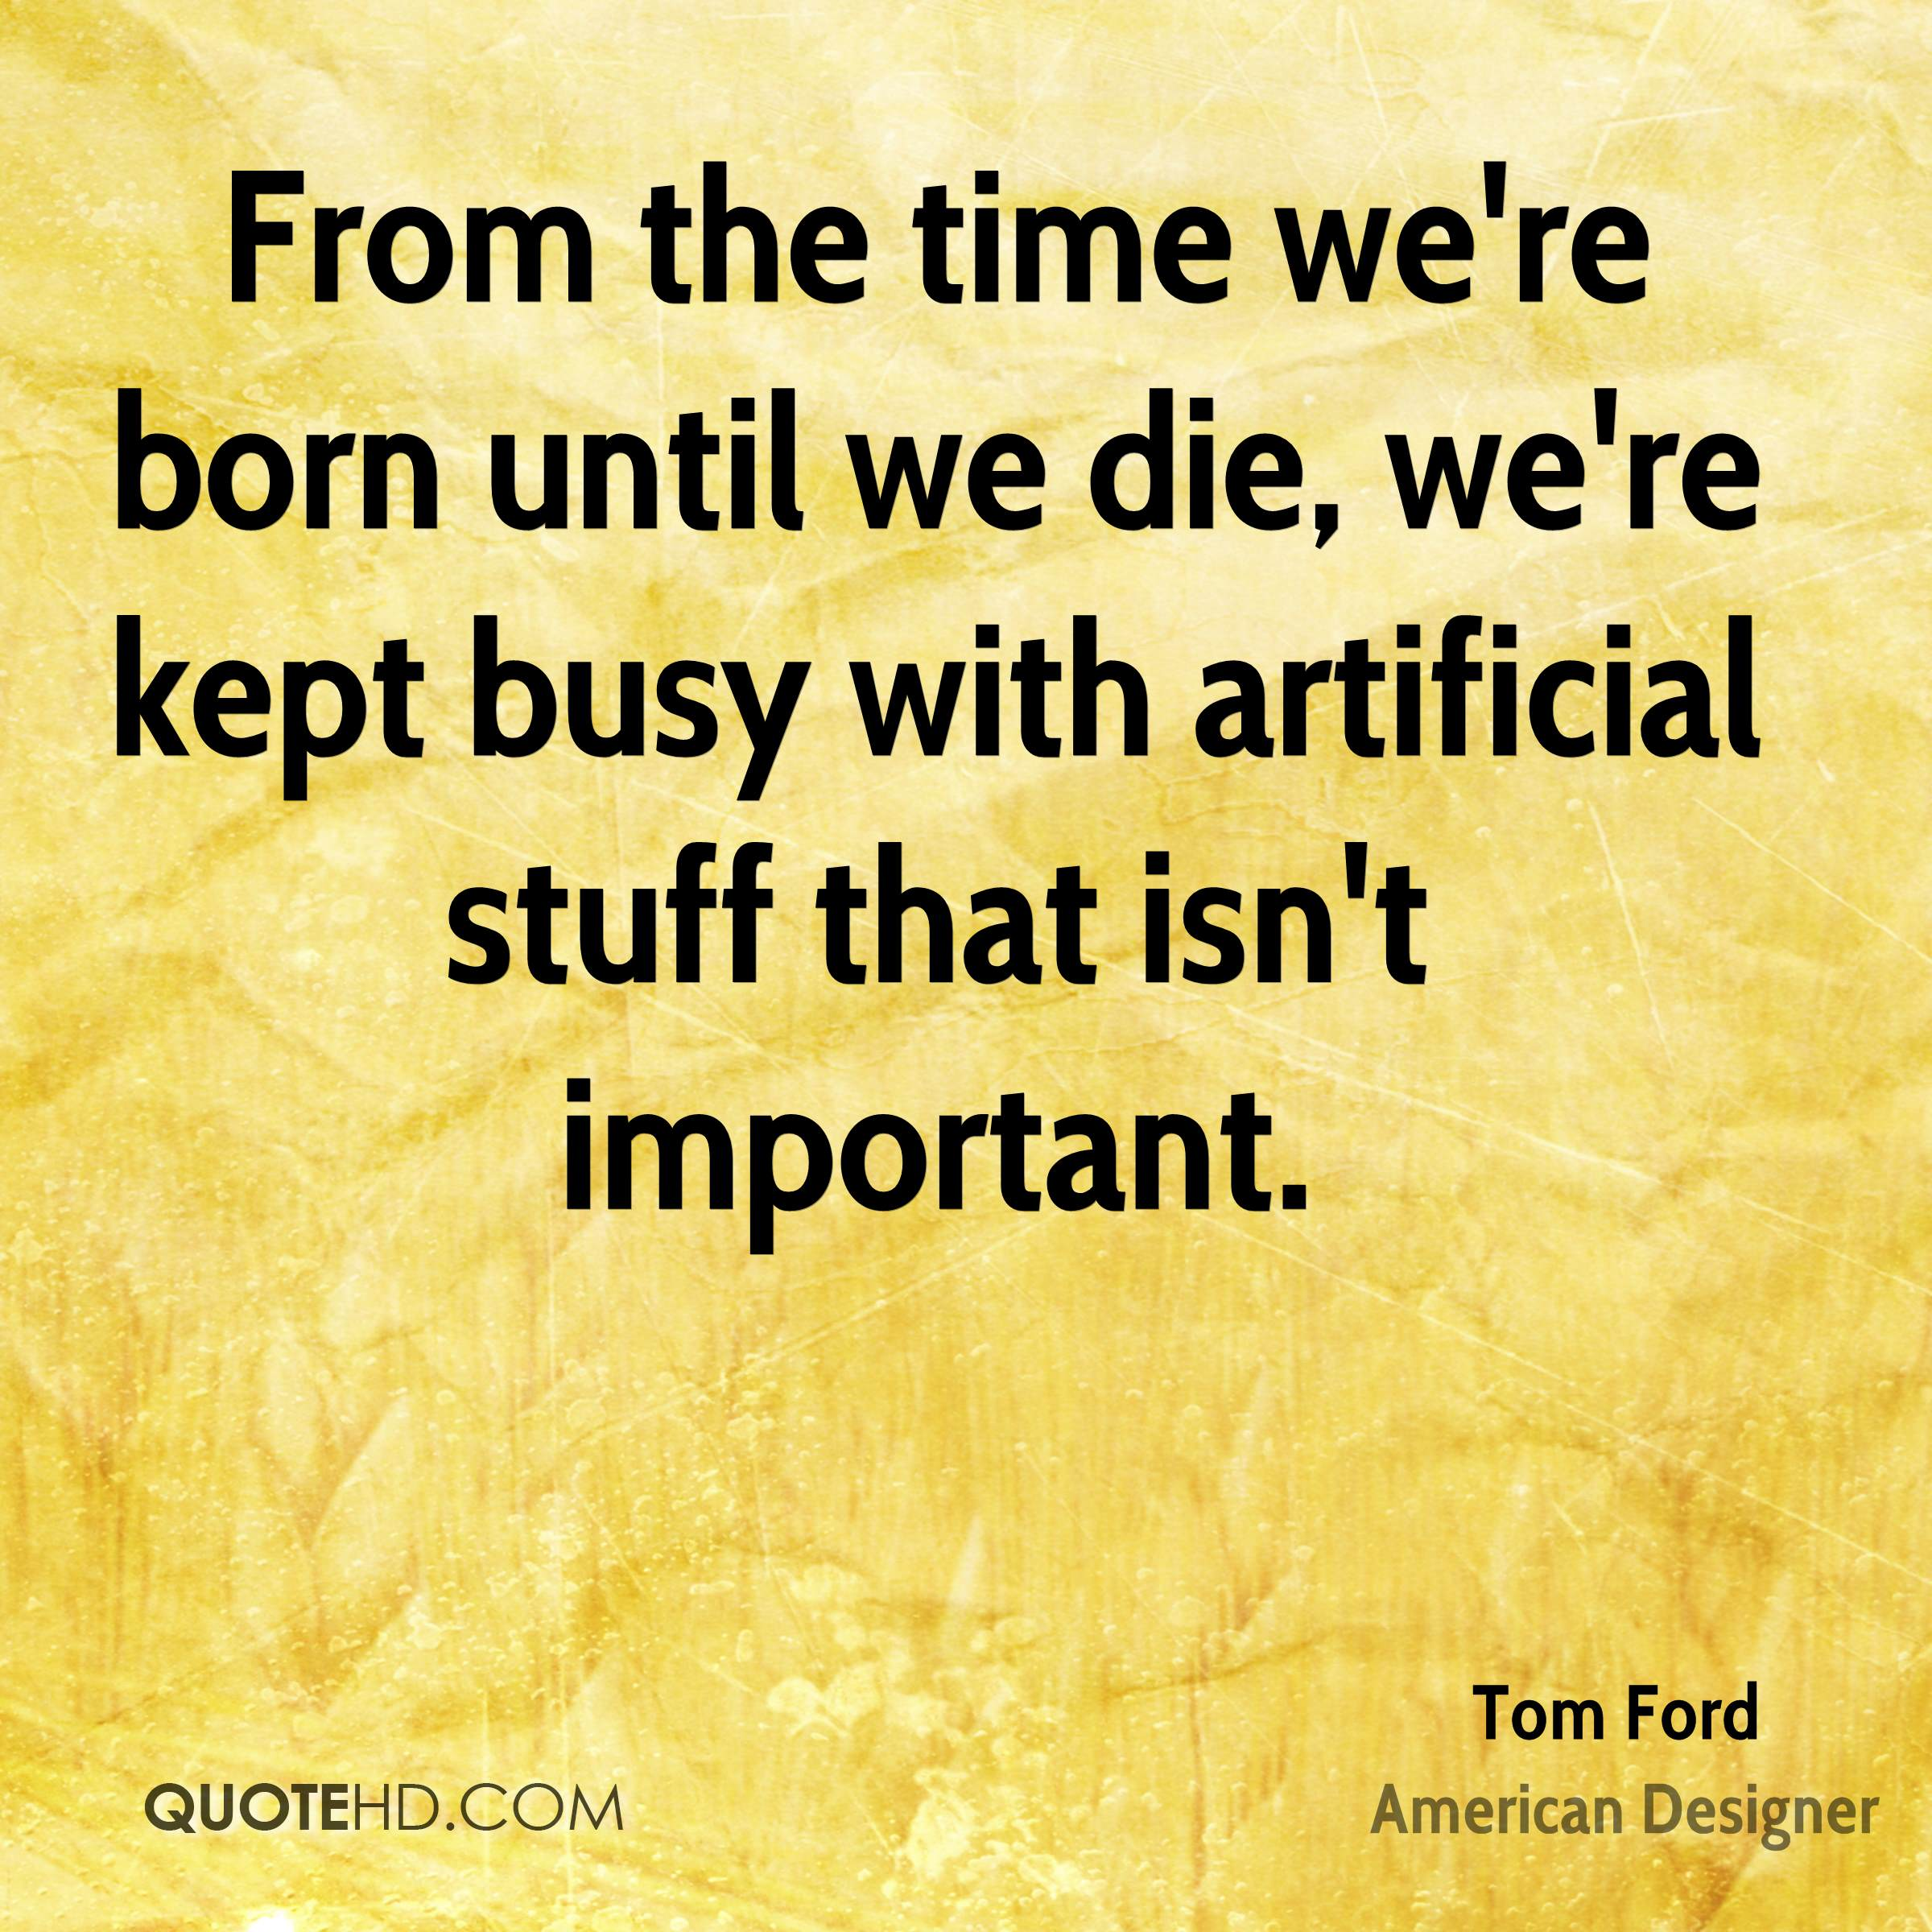 From the time we're born until we die, we're kept busy with artificial stuff that isn't important.